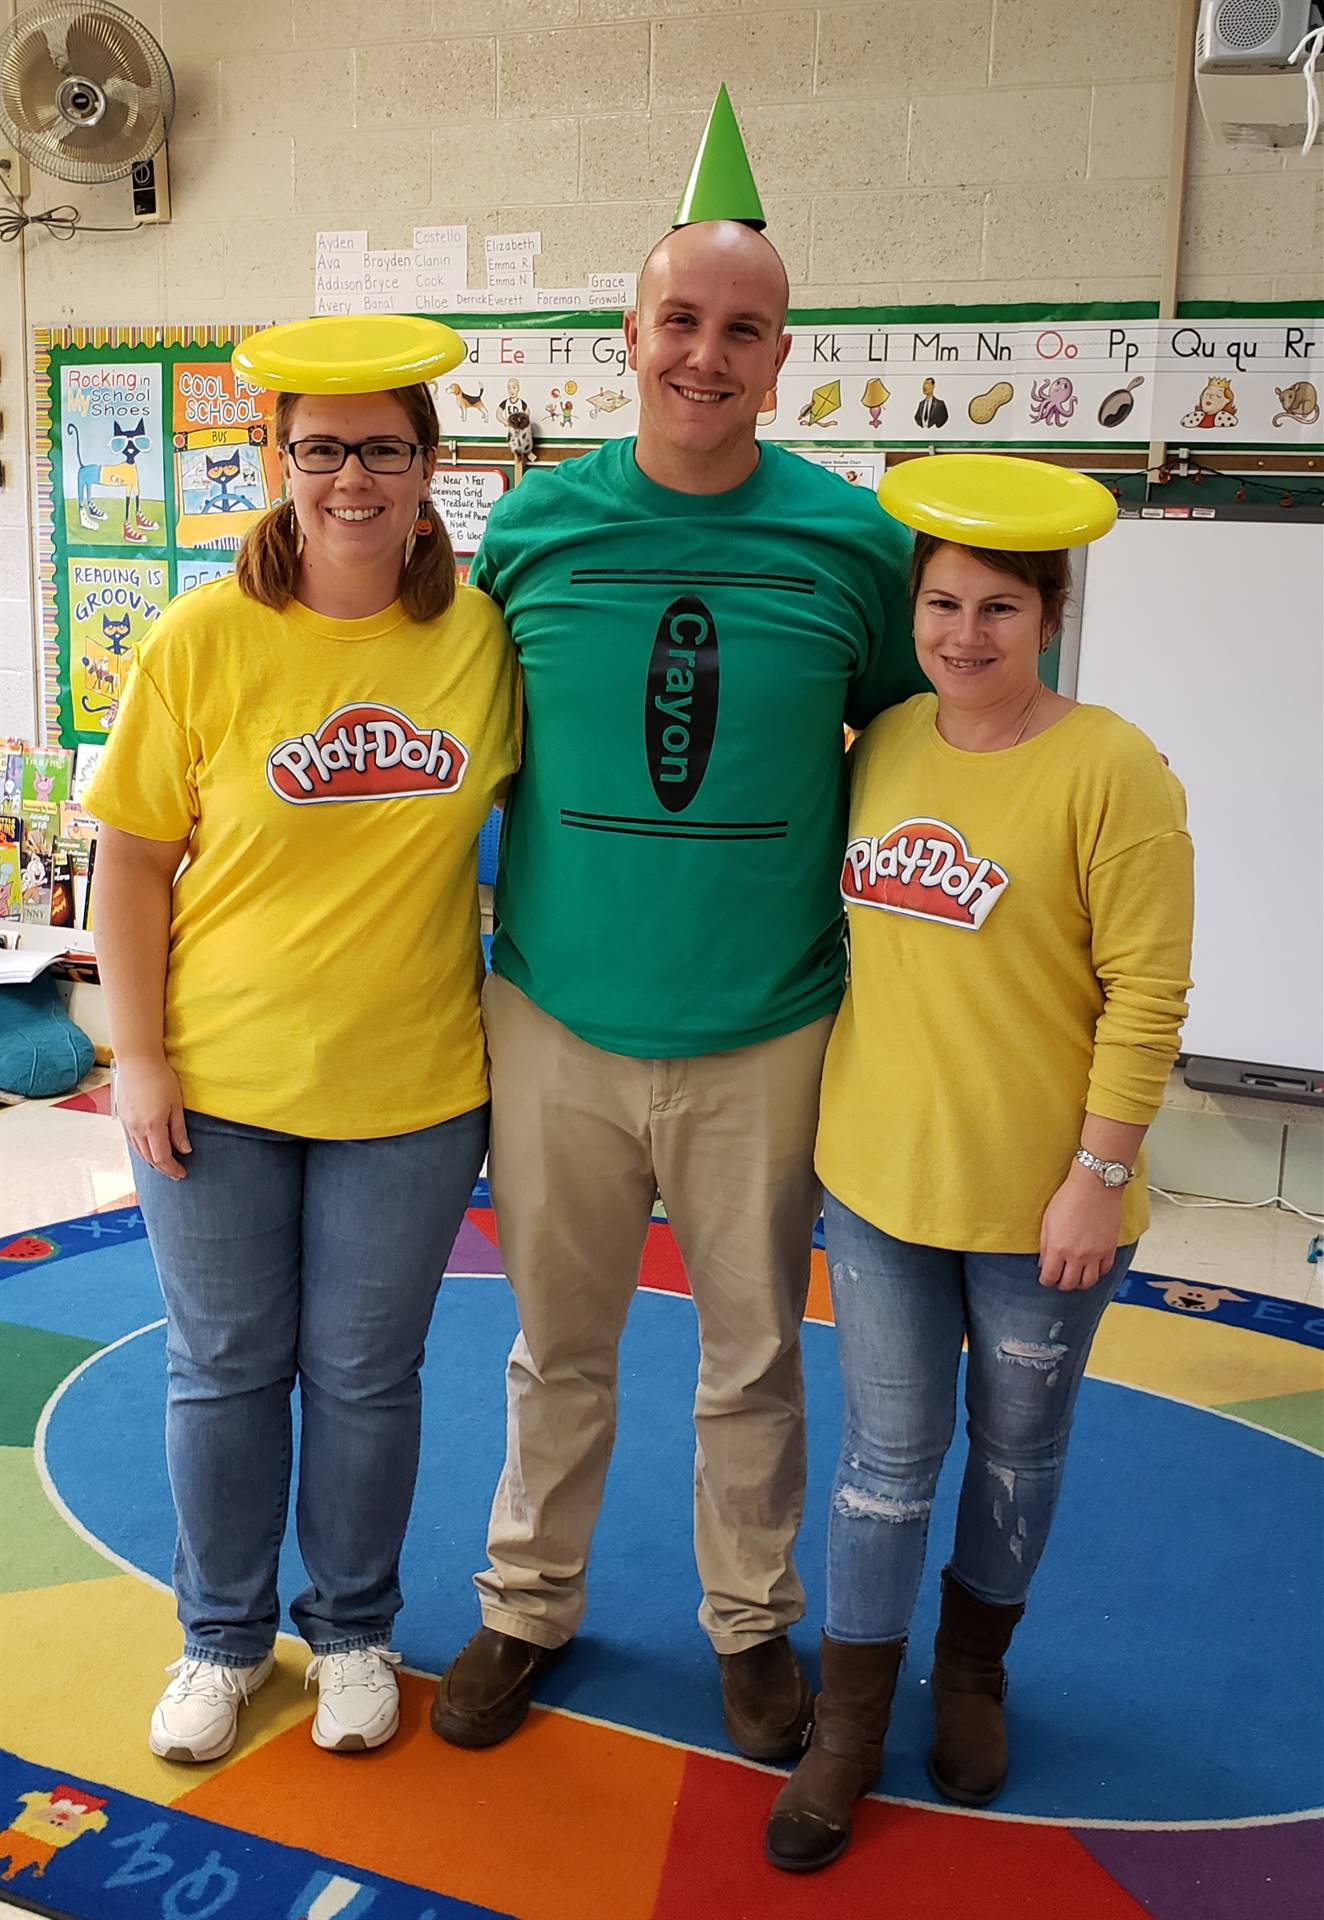 2 ladies and 1 guy with playdoh costumes